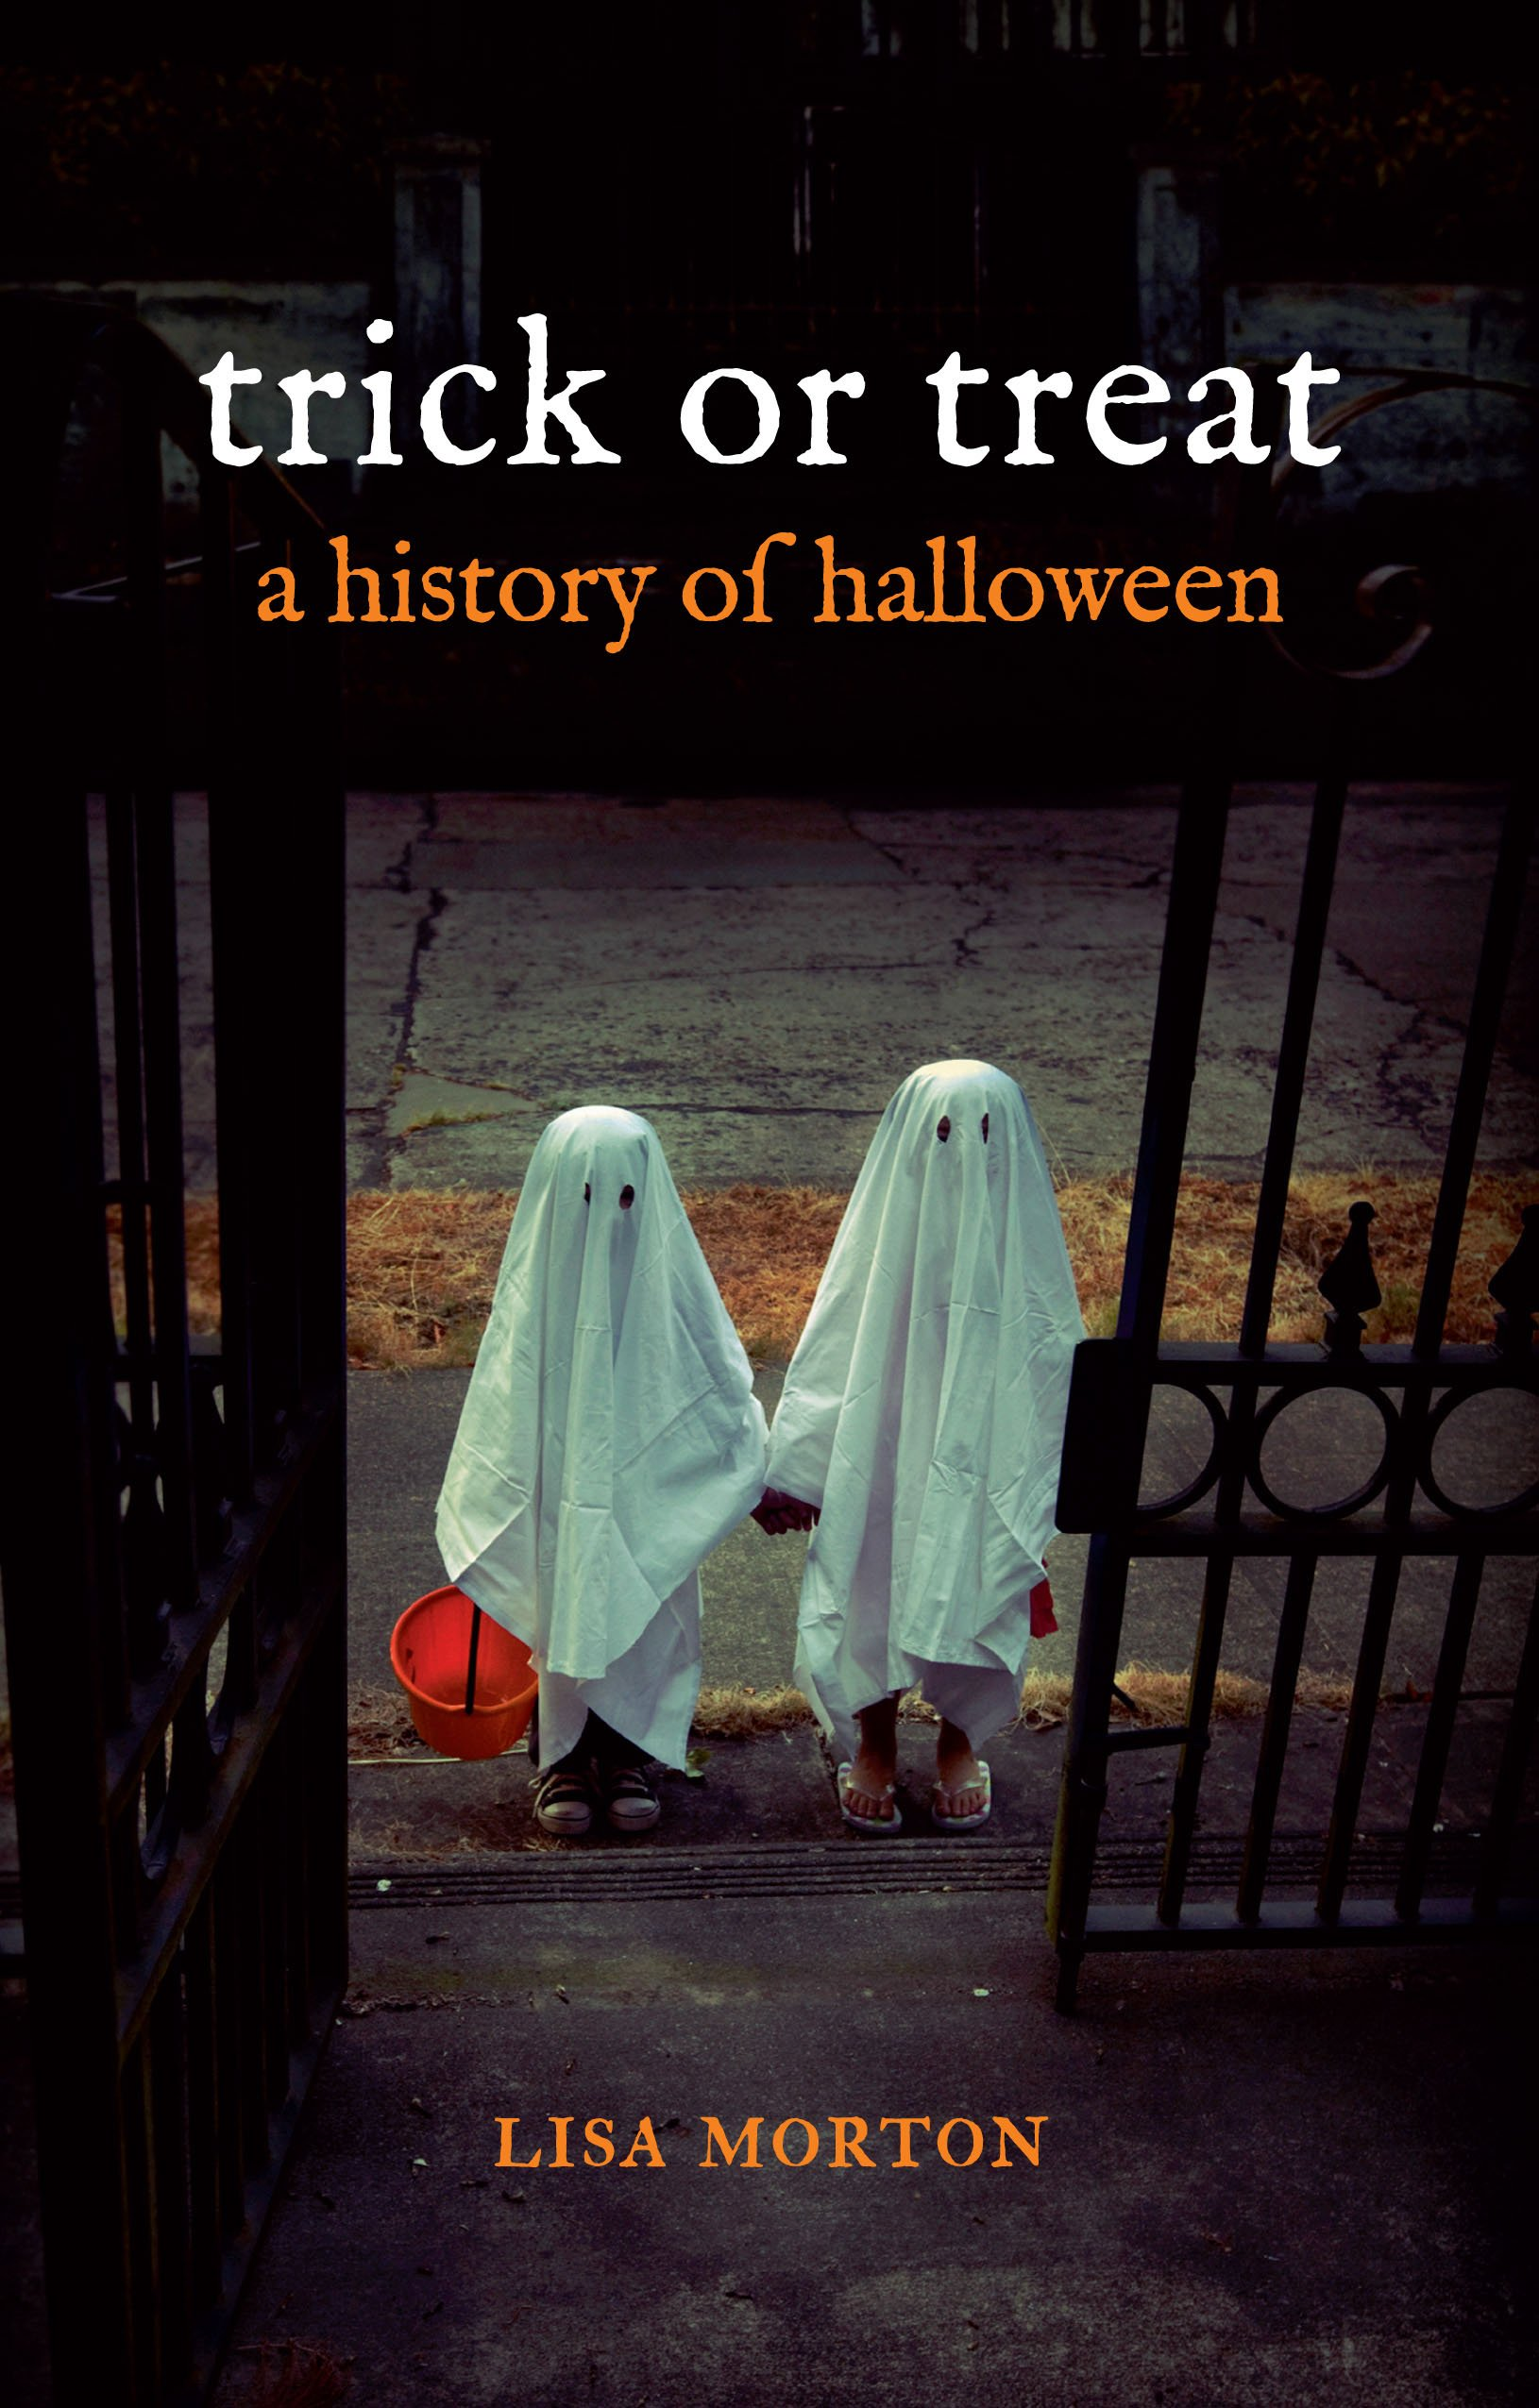 c14b993c59c Trick or Treat: A History of Halloween: Lisa Morton: 9781780231877 ...